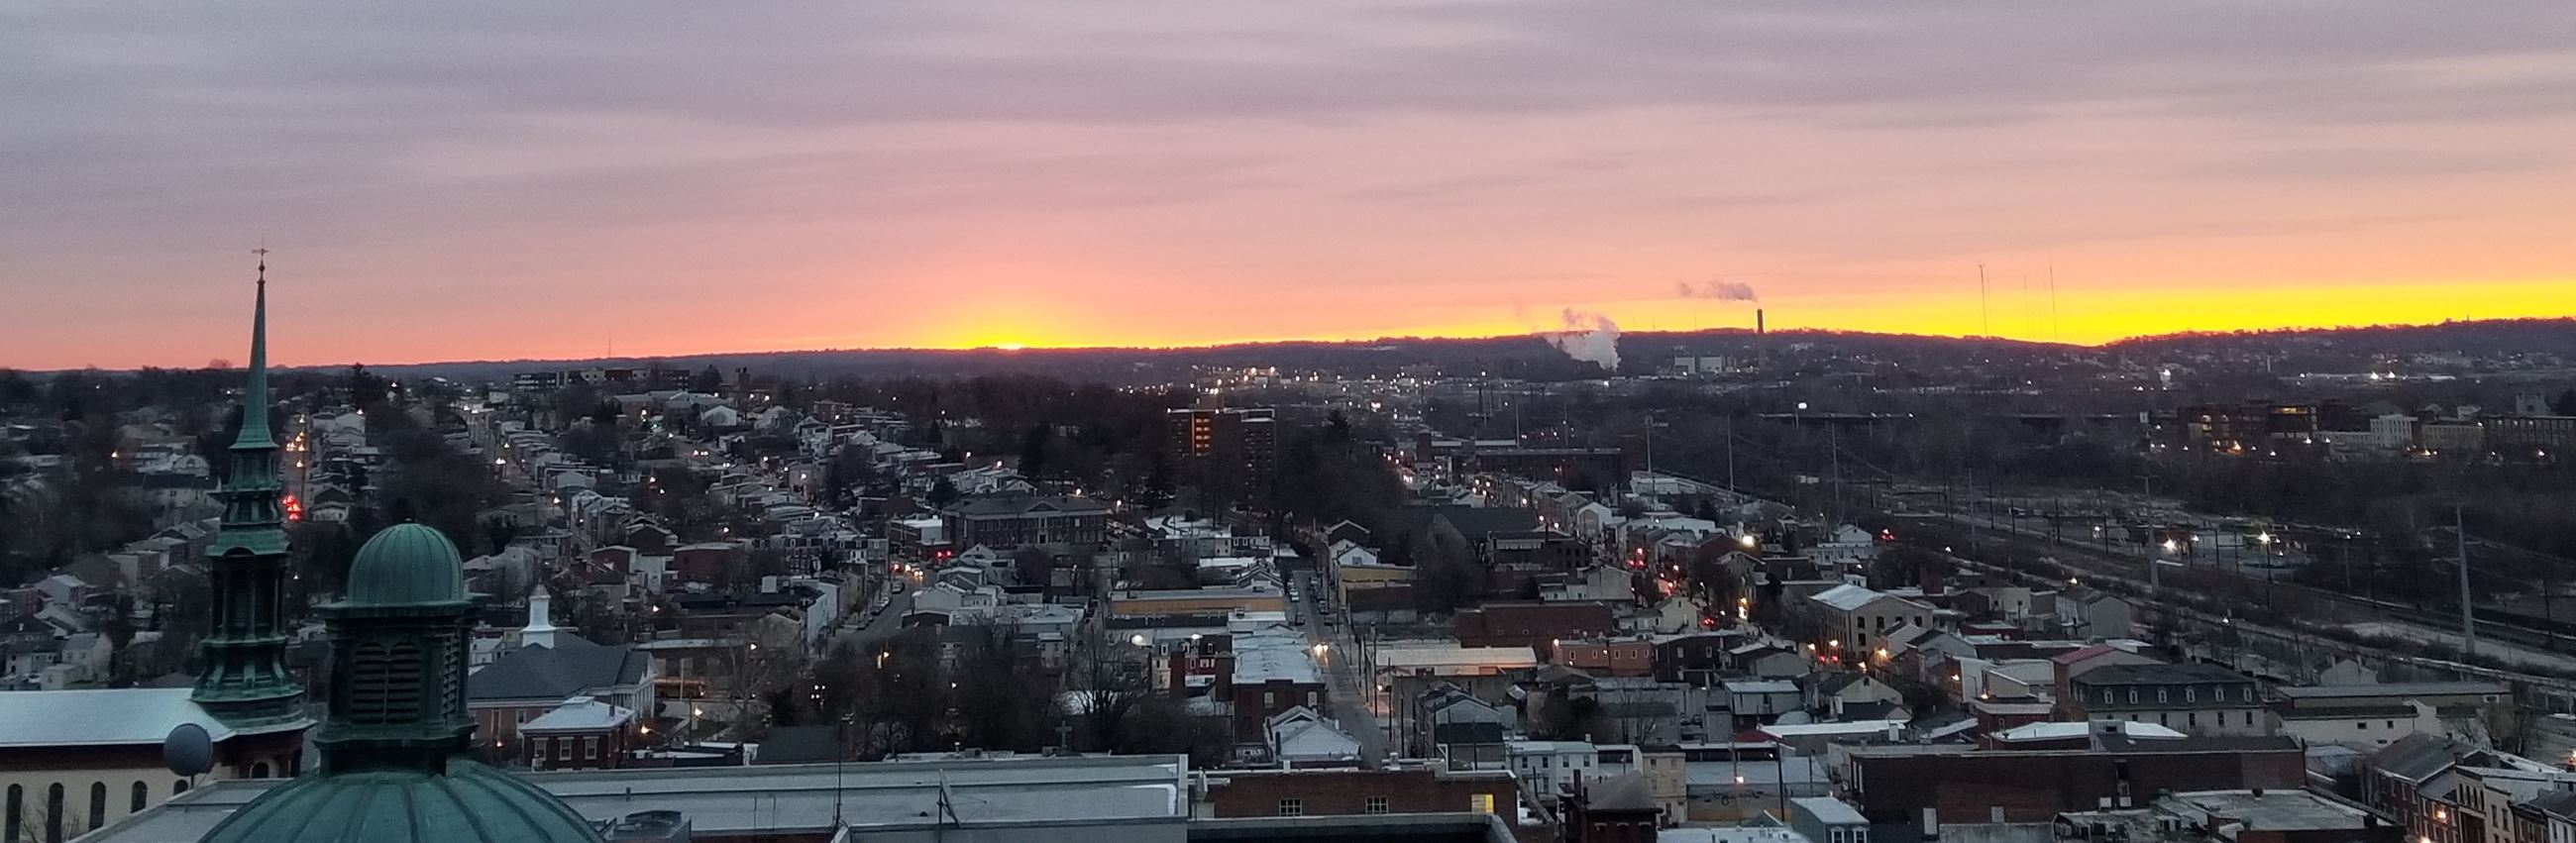 Sun Rise over Norristown